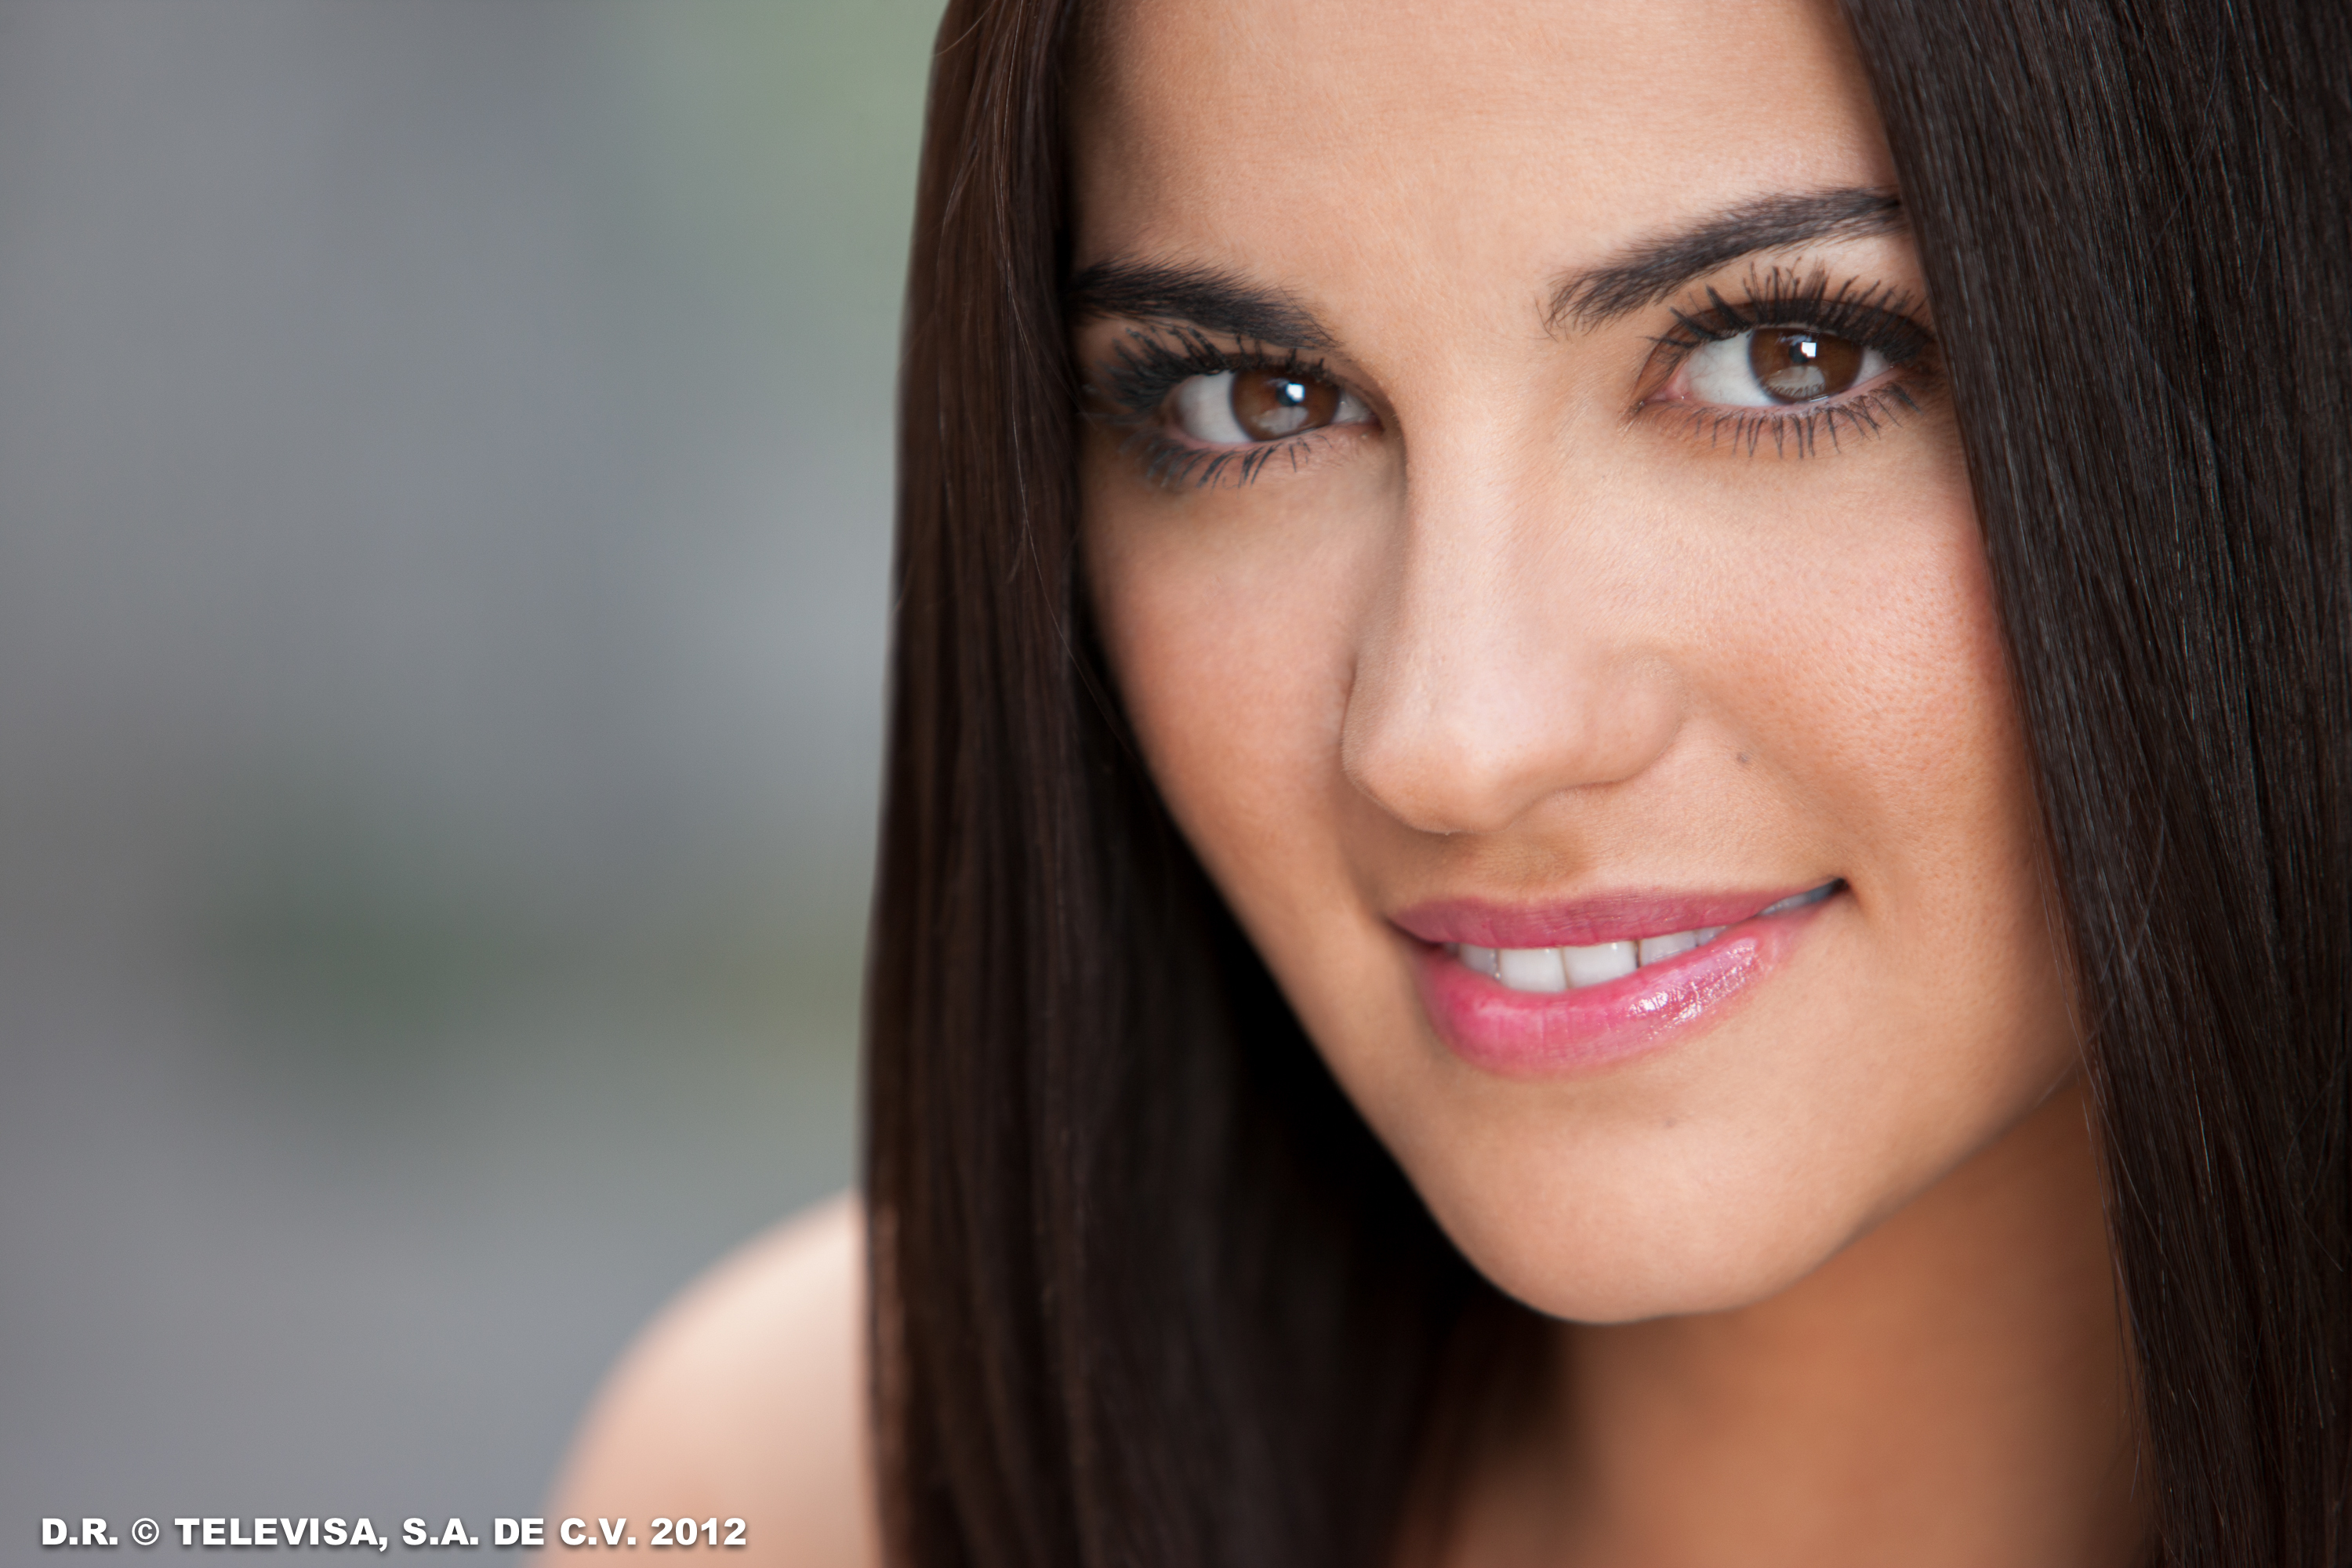 Maite Perroni Wallpapers Images Photos Pictures Backgrounds